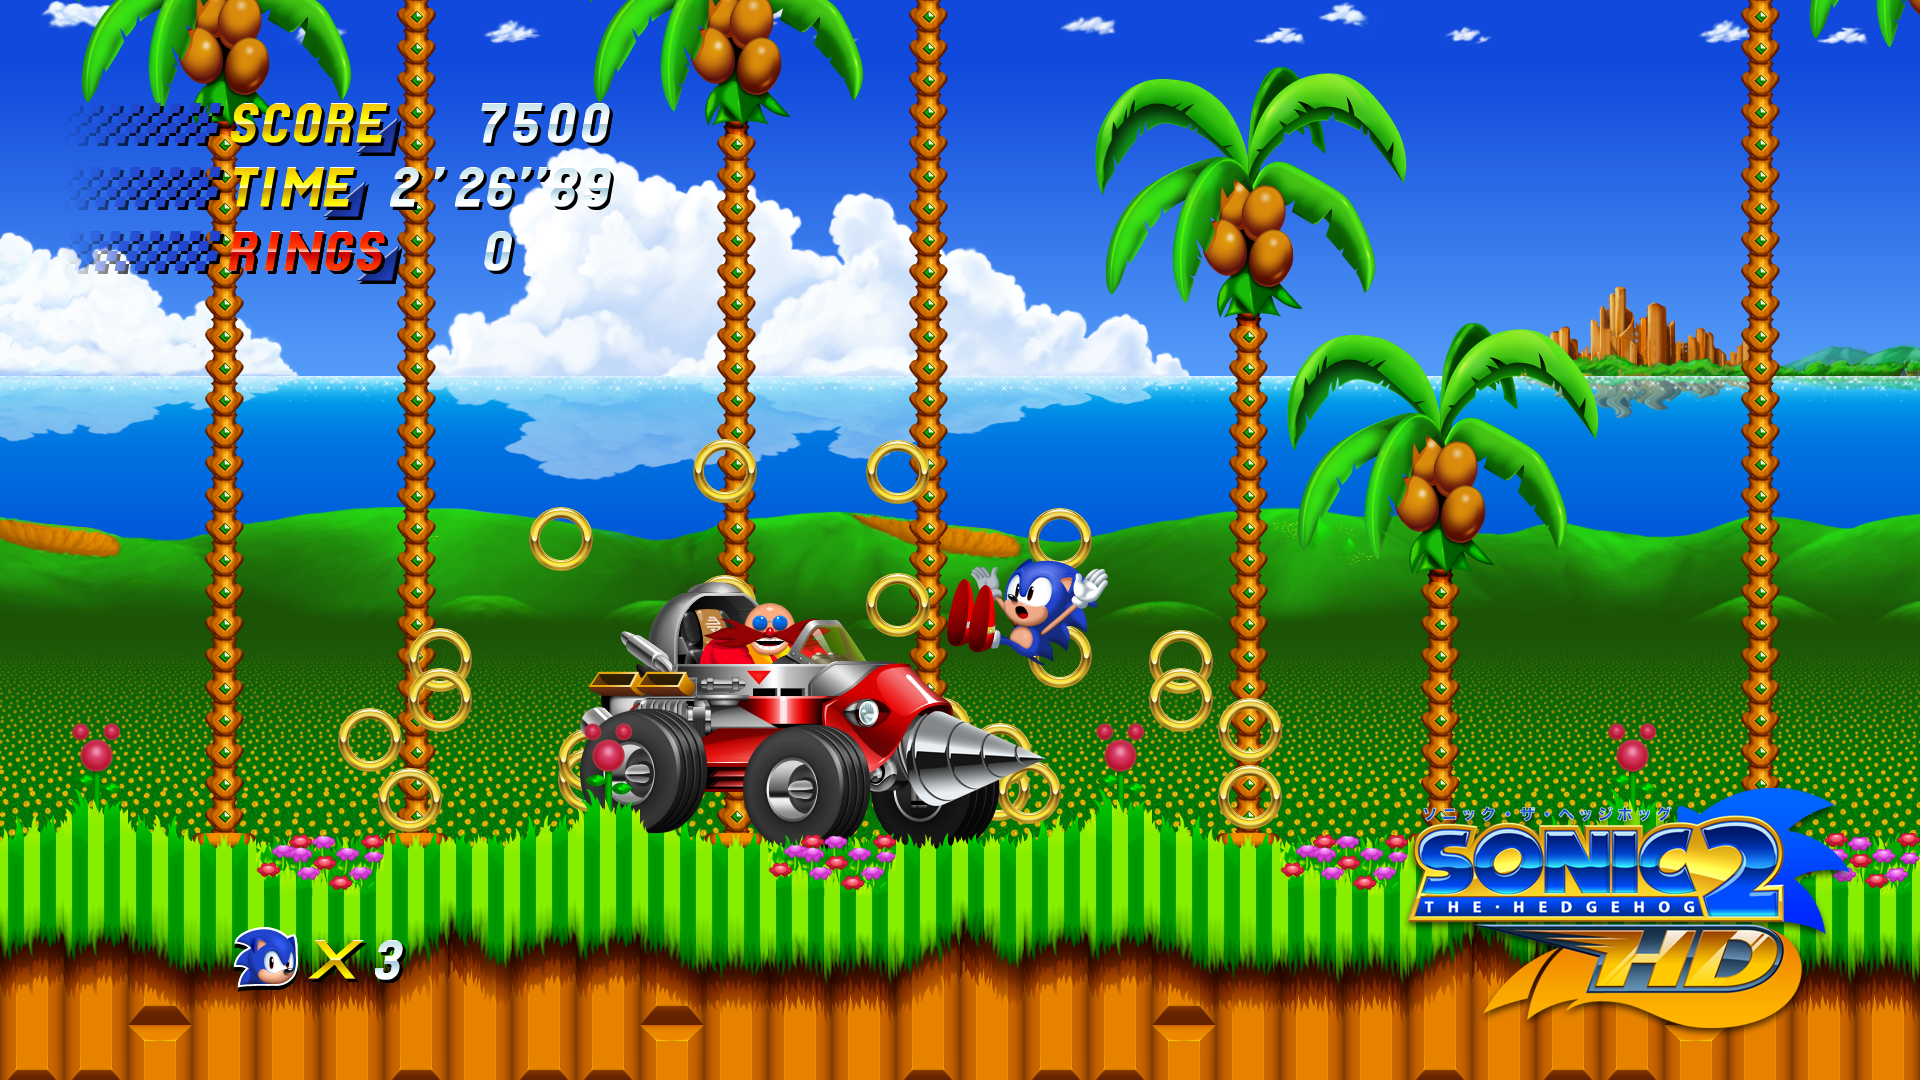 sonic the hedgehog 2 hd screenshot 5f19abc9 Seven Incredible Fan Remakes Of Classic Games